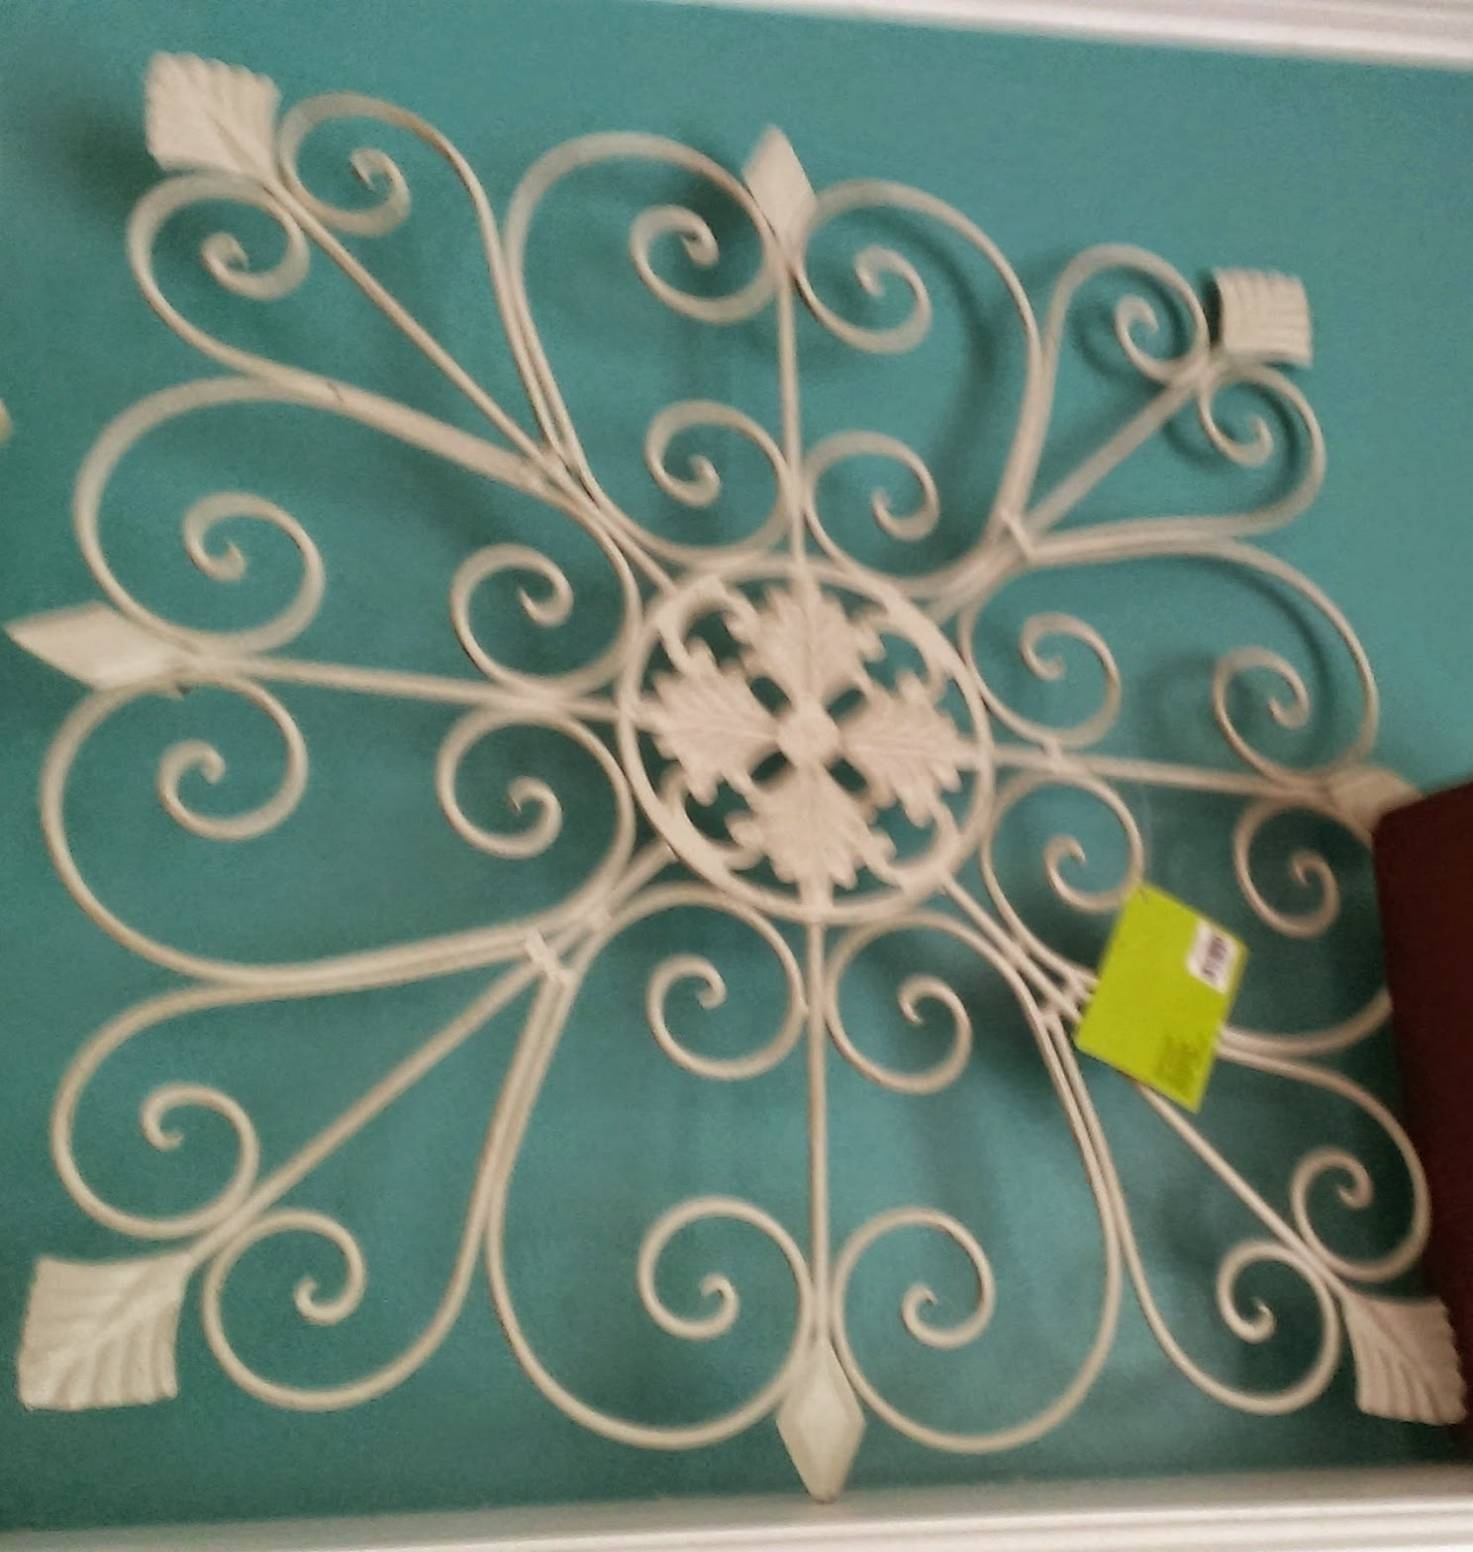 Wrought Iron Wall Art Hobby Lobby Floors Doors, Hobby Lobby Metal within Hobby Lobby Metal Wall Art (Image 20 of 20)